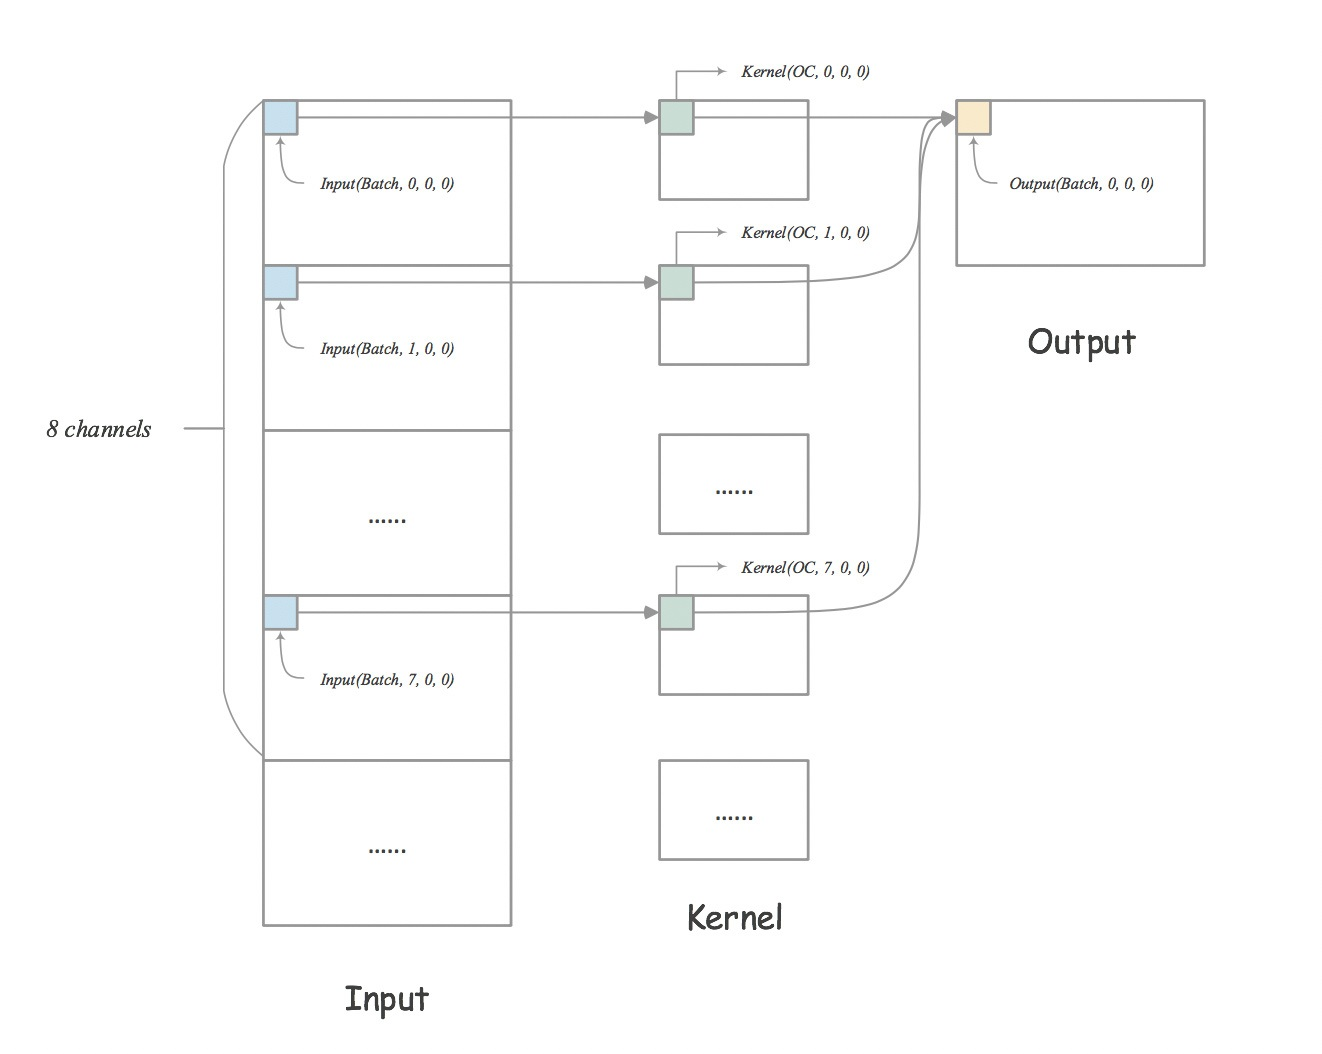 Figure 1.  Direct convolution on NCHW memory layout. We can get a part of output for 8 channels of input by formula. As shown in the figure, it will get the input and kernel value from discrete memory locations and then do an add operation. This operation can be accelerated with an Intel® AVX instruction, which consolidates multiplication and addition in one instruction (AKKA, SIMD).